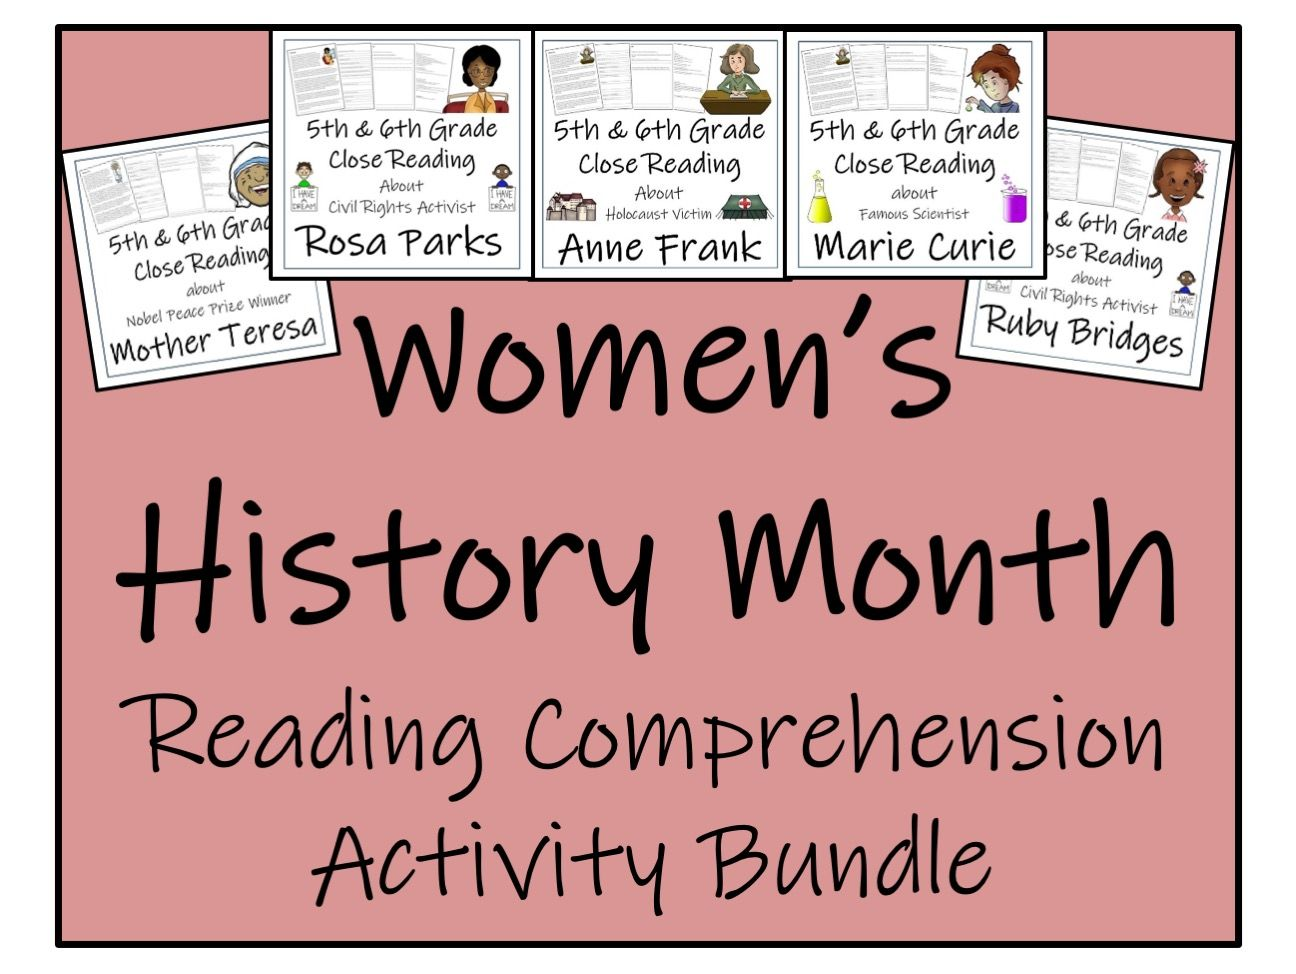 UKS2 Literacy - Women's History Month Reading Comprehension Activity Bundle